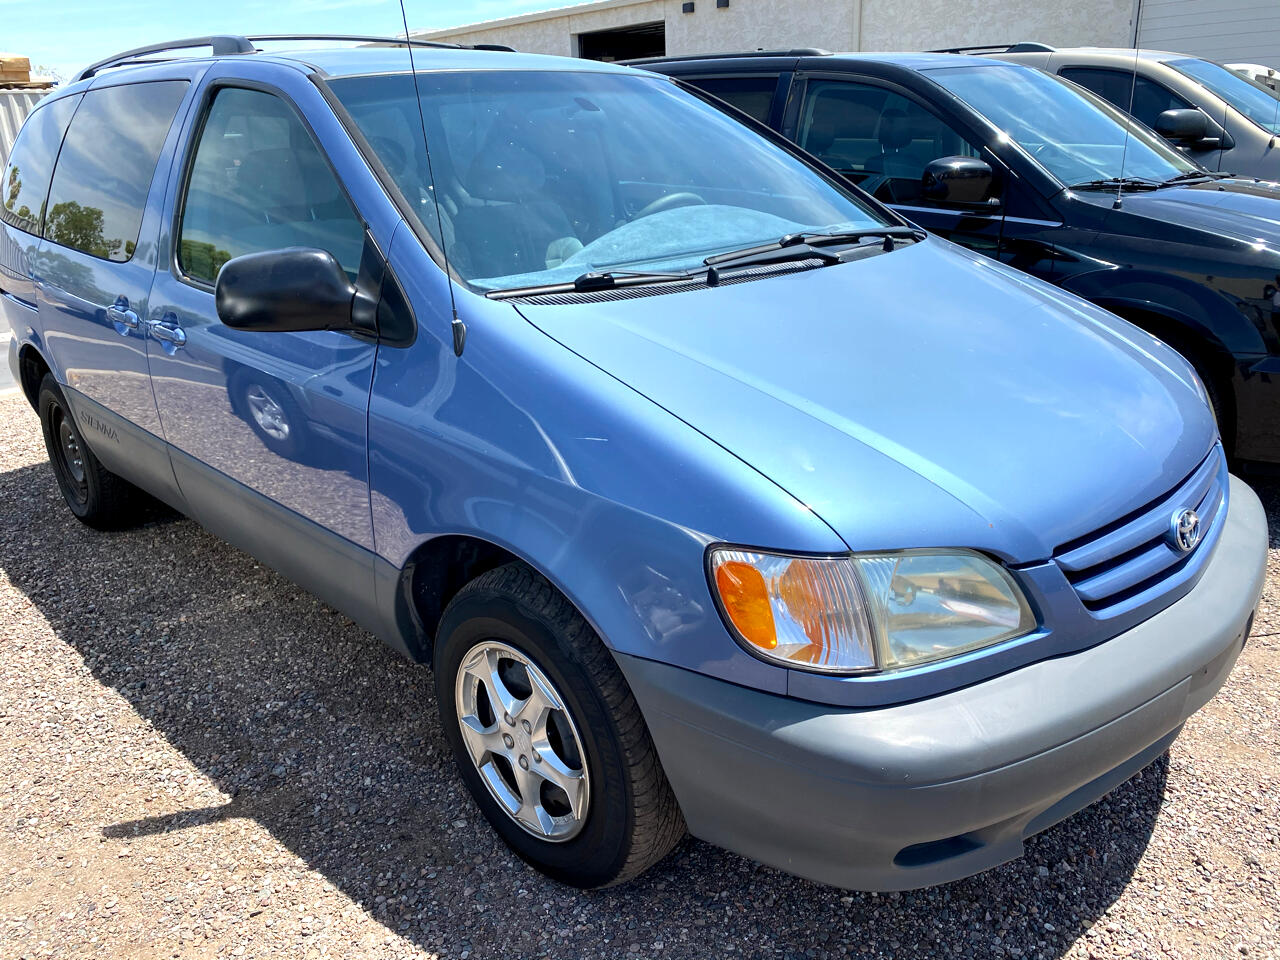 used 2003 toyota sienna 5dr xle natl for sale in chandler az 85286 auction block auto auction block auto